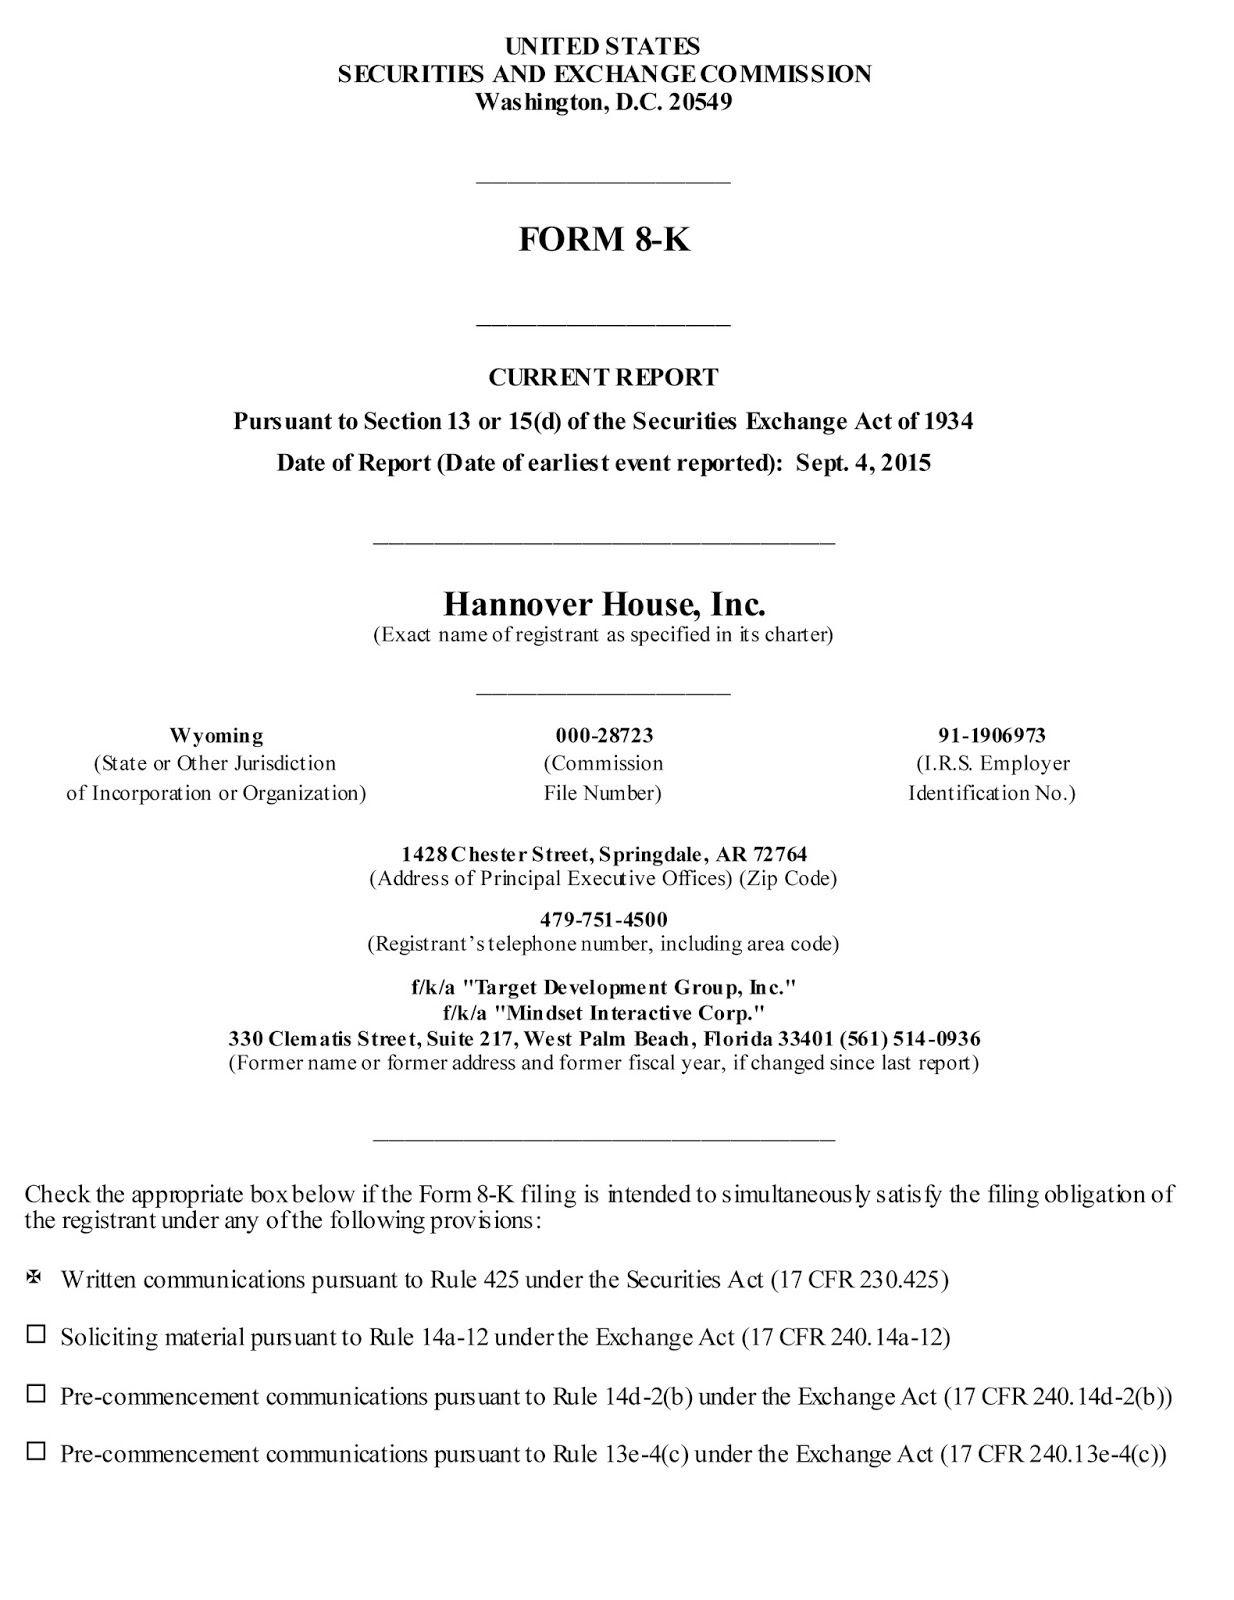 HHSE Investor Relations: HHSE - S.E.C. Form 8k Statement, Monday ...